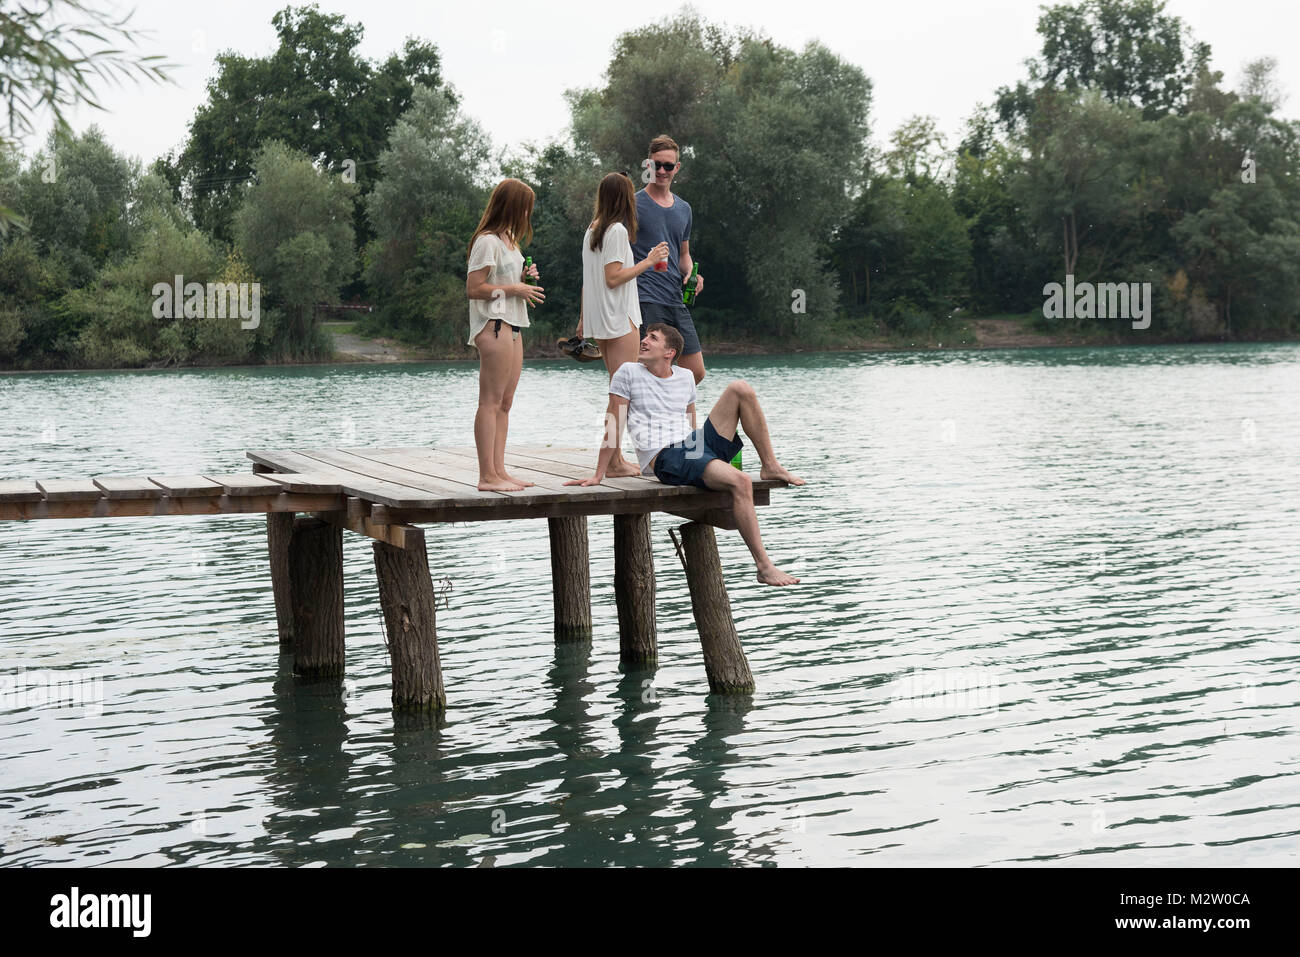 Youths on the quarry pond Liedolsheim, Dettenheim, Baden-Wurttemberg, Germany - Stock Image